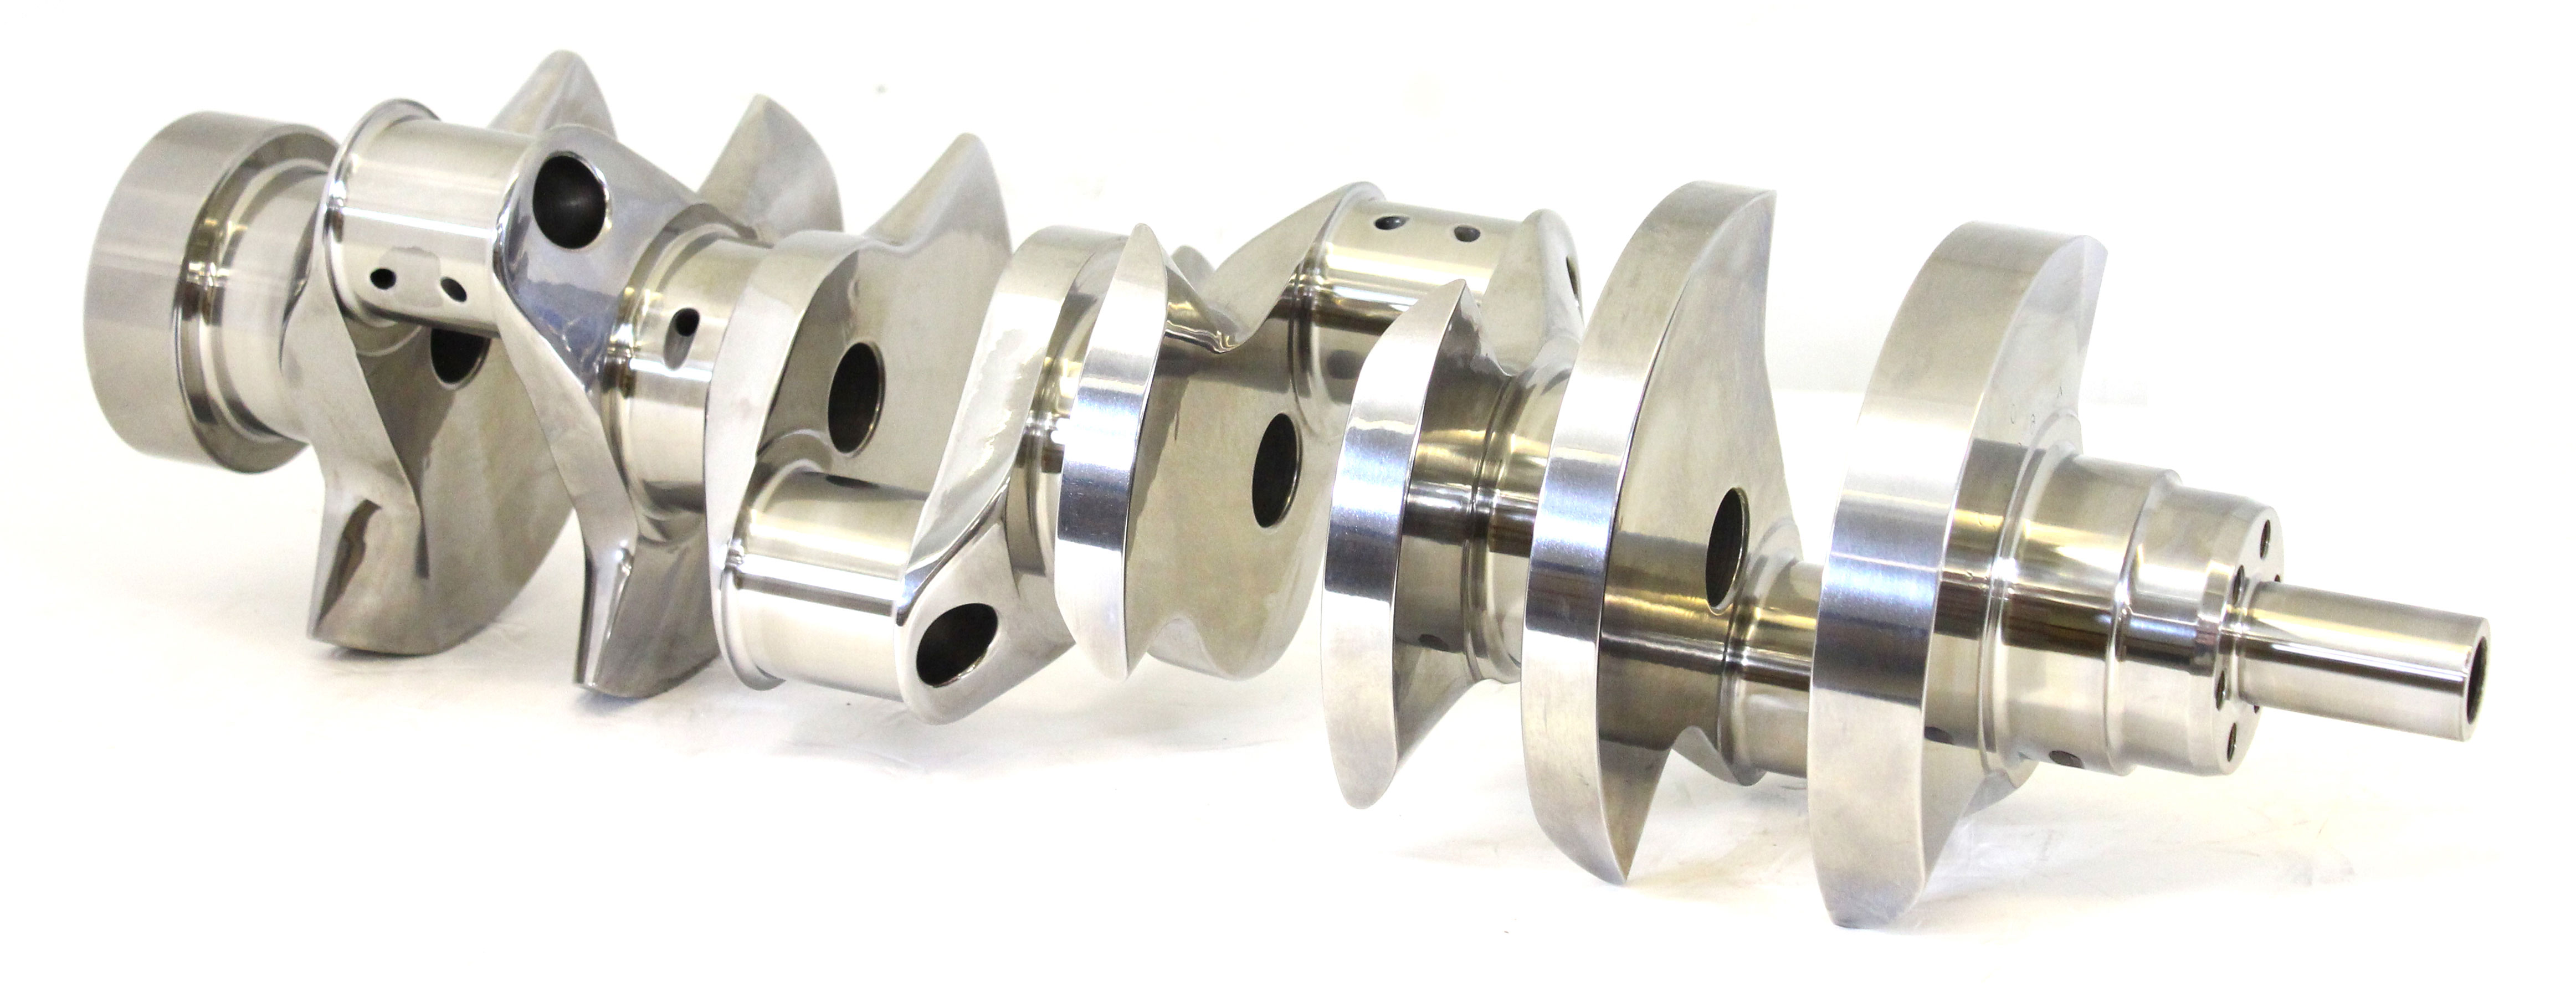 RY45 Billet Crankshaft Image